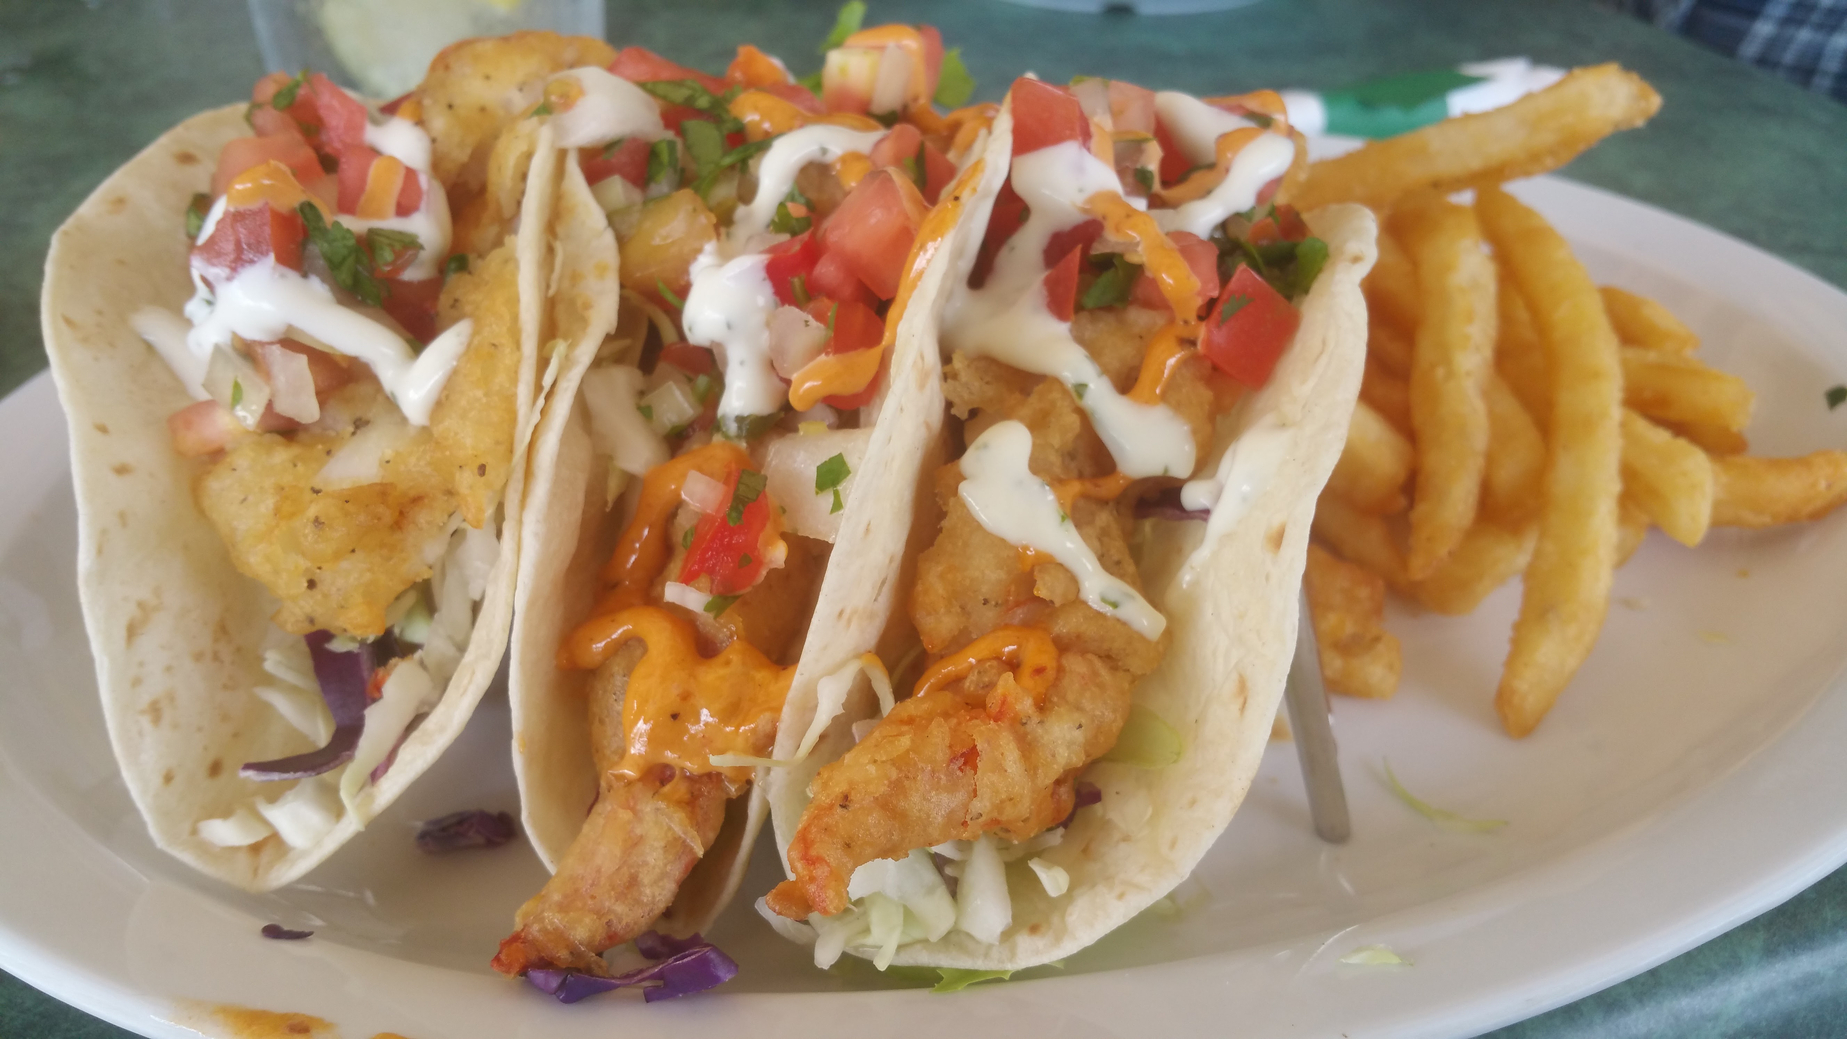 Fried lobster tacos